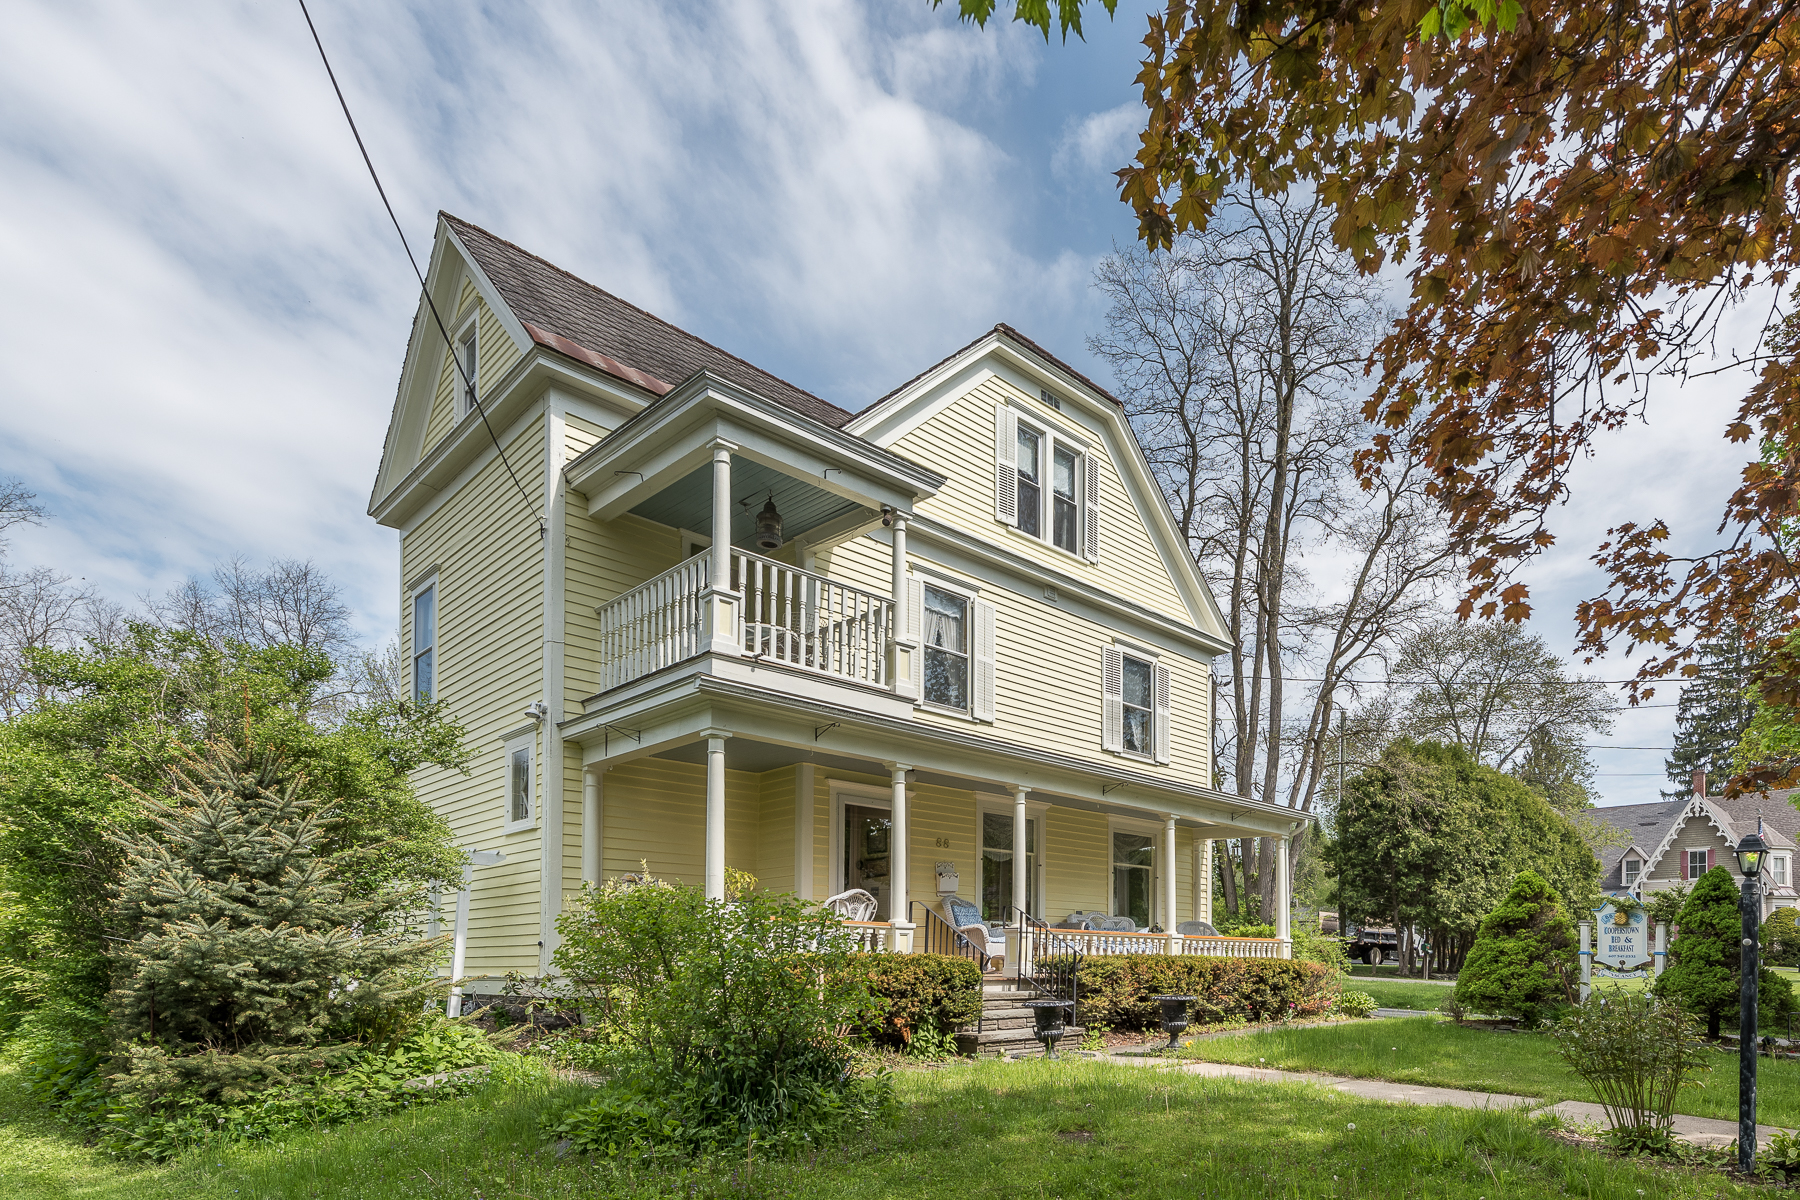 Single Family Home for Sale at Victorian Gem in the Heart of Cooperstown 88 Chestnut St Cooperstown, 13326 United States